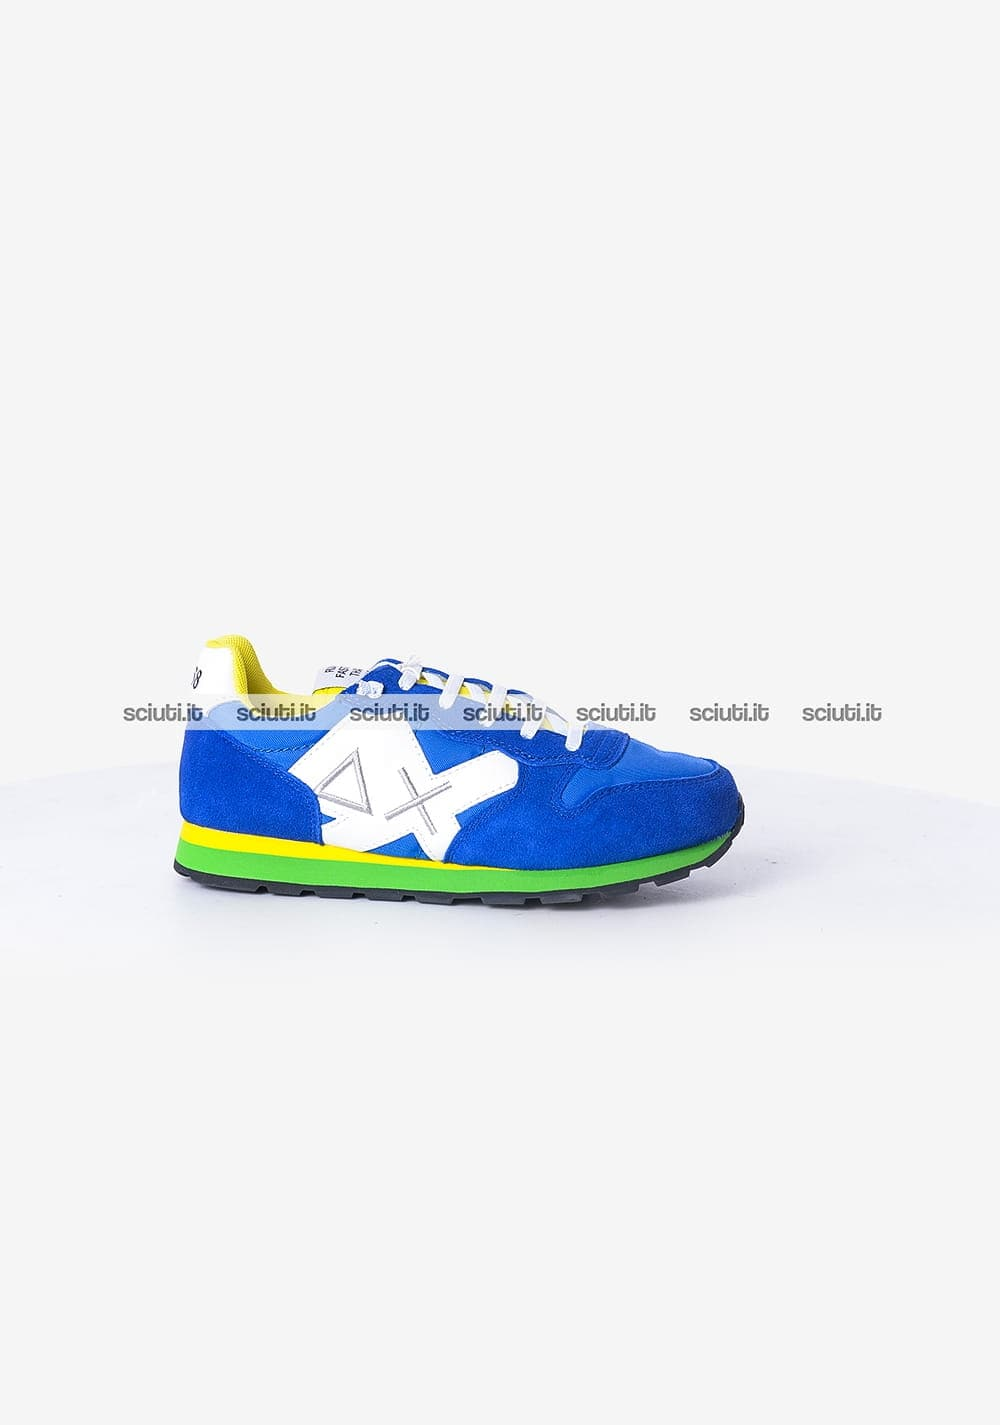 best sneakers 06961 c6b8c Scarpe Sun68 bambino Tom multicolor nylon blu royal verde